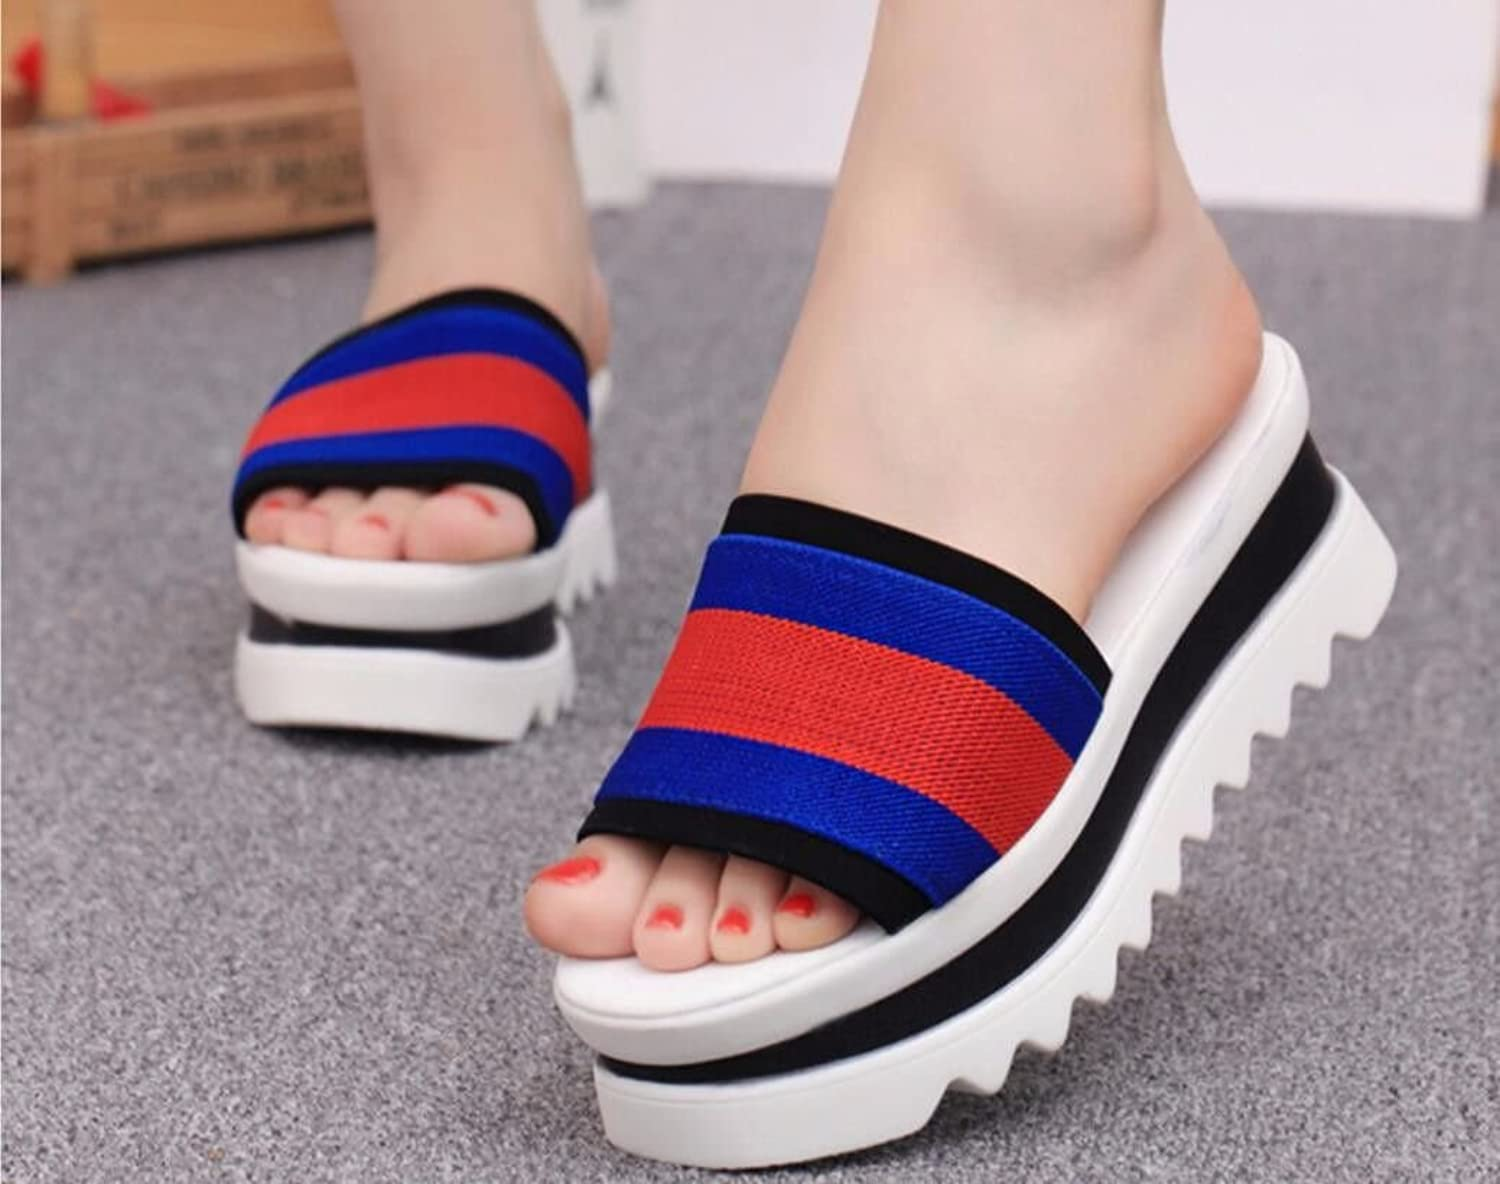 GTVERNH-Women's shoes Fashion in Spring and Summer Cool Slippers Fashionable and Wild are Suitable for Big Feet Thick Feet and High Wear.